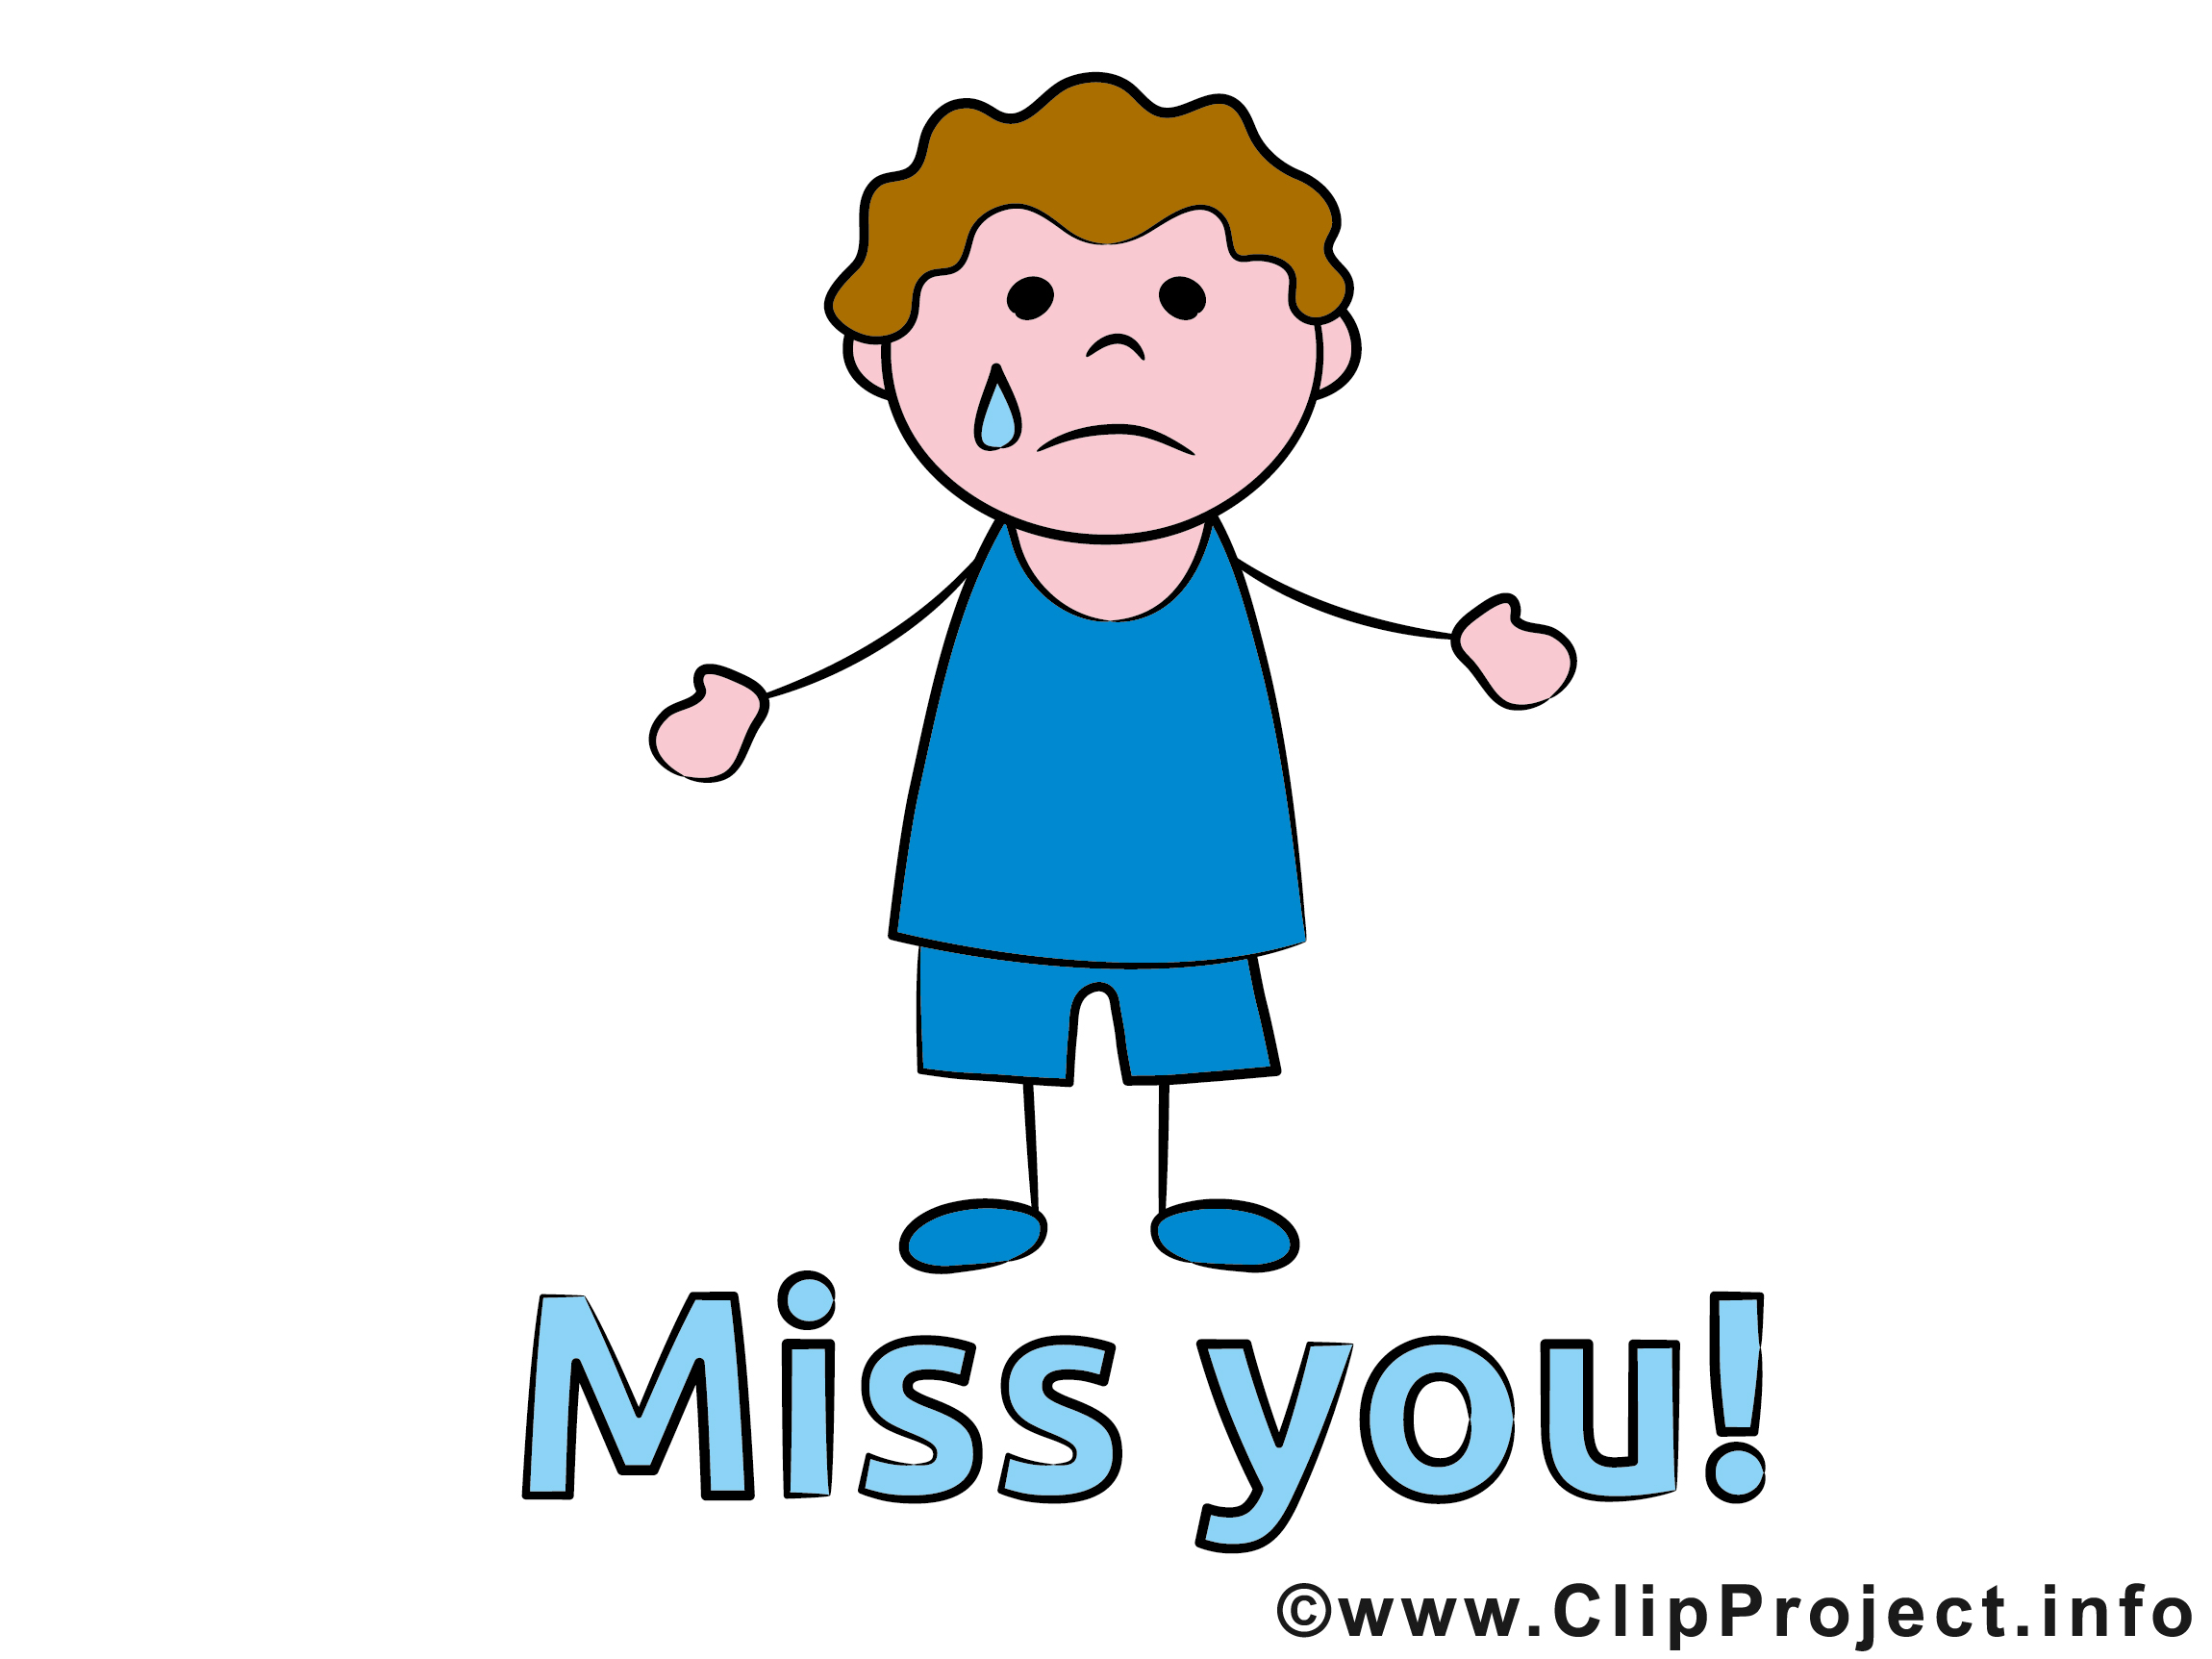 Clip Art Miss You Clipart miss you clipart kid clipart